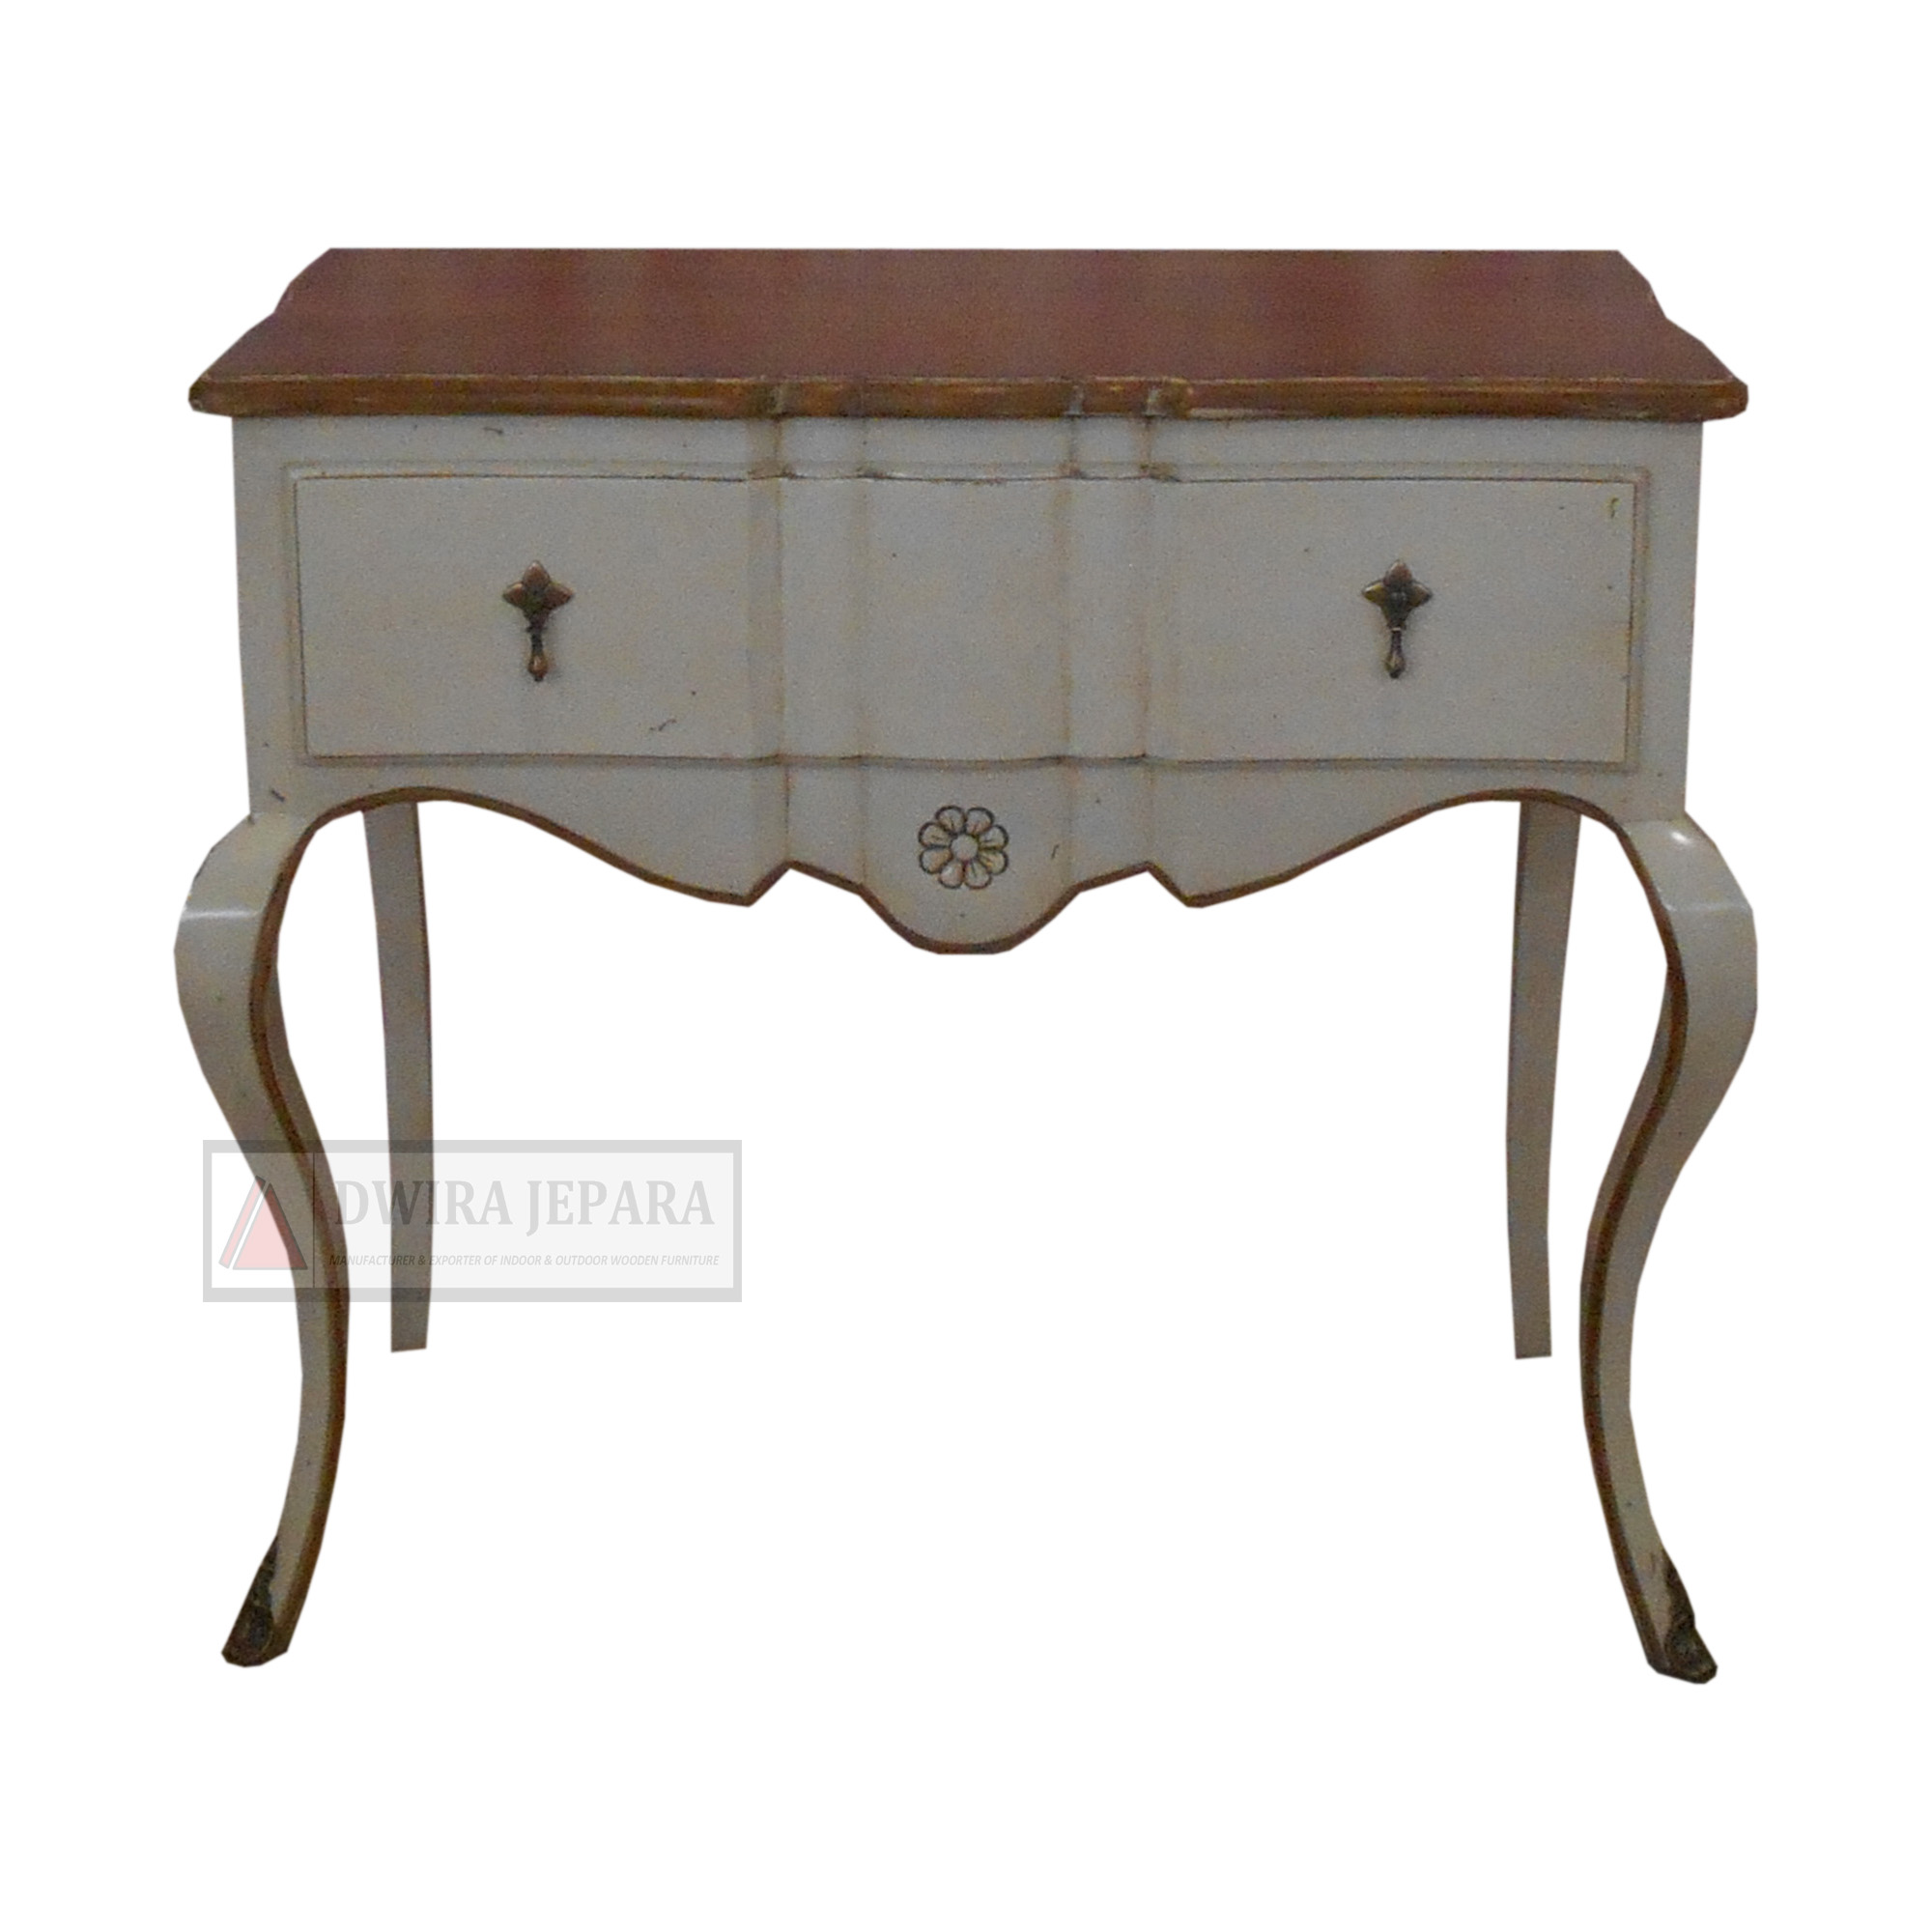 French Shabby Chic Wooden Console Table Furniture For Living Room